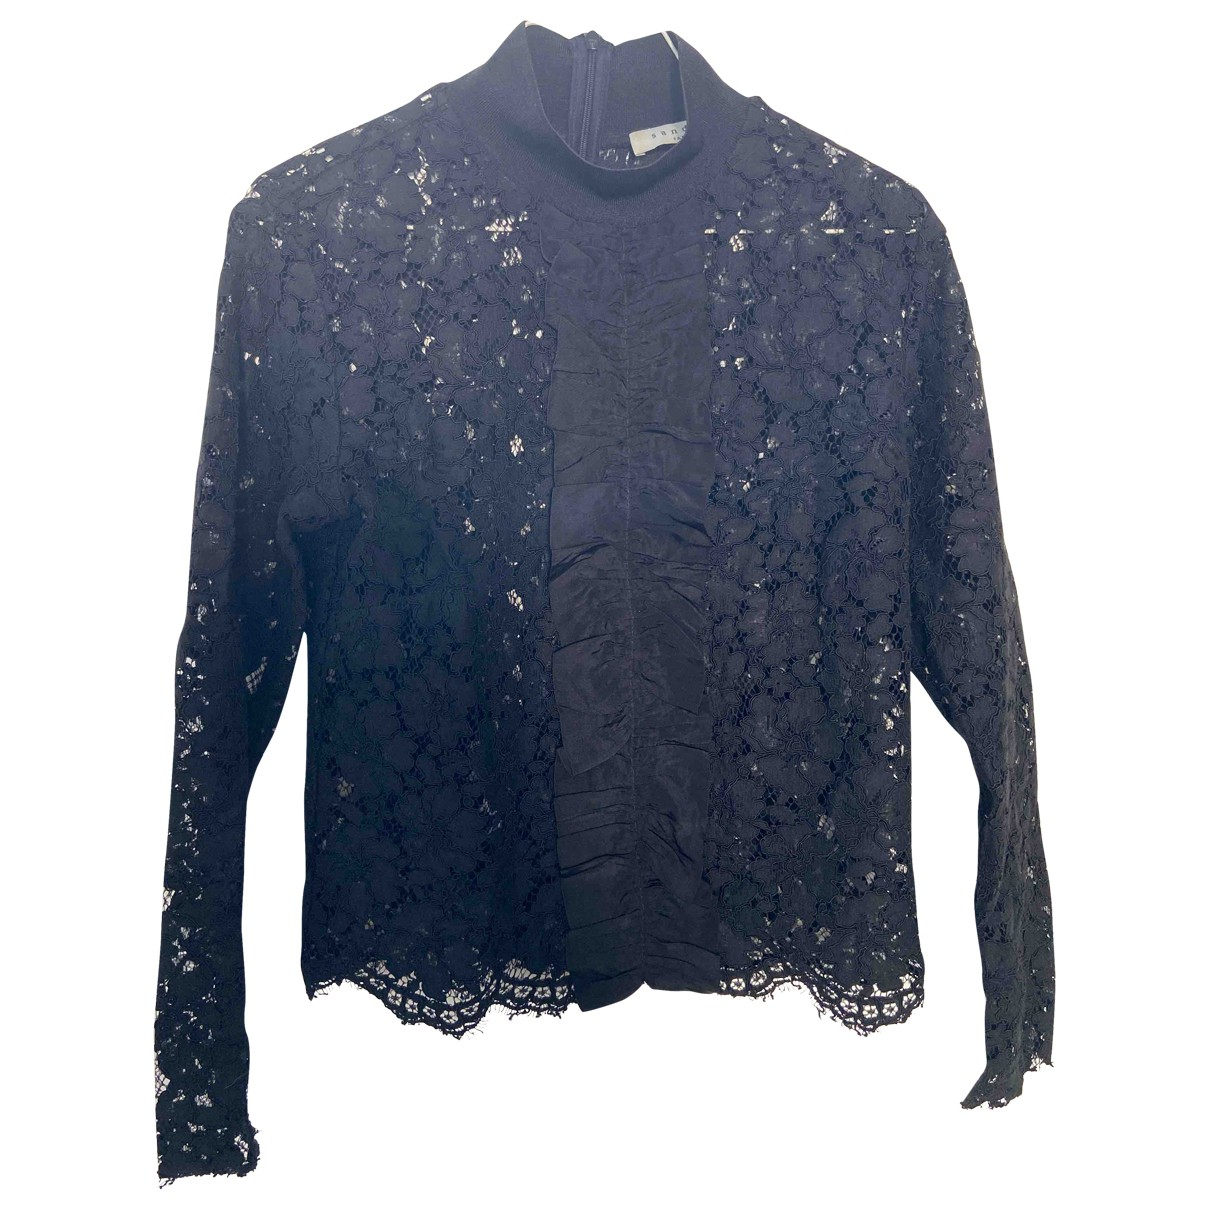 Sandro Fall Winter 2019 Black Lace  top for Women 36 FR